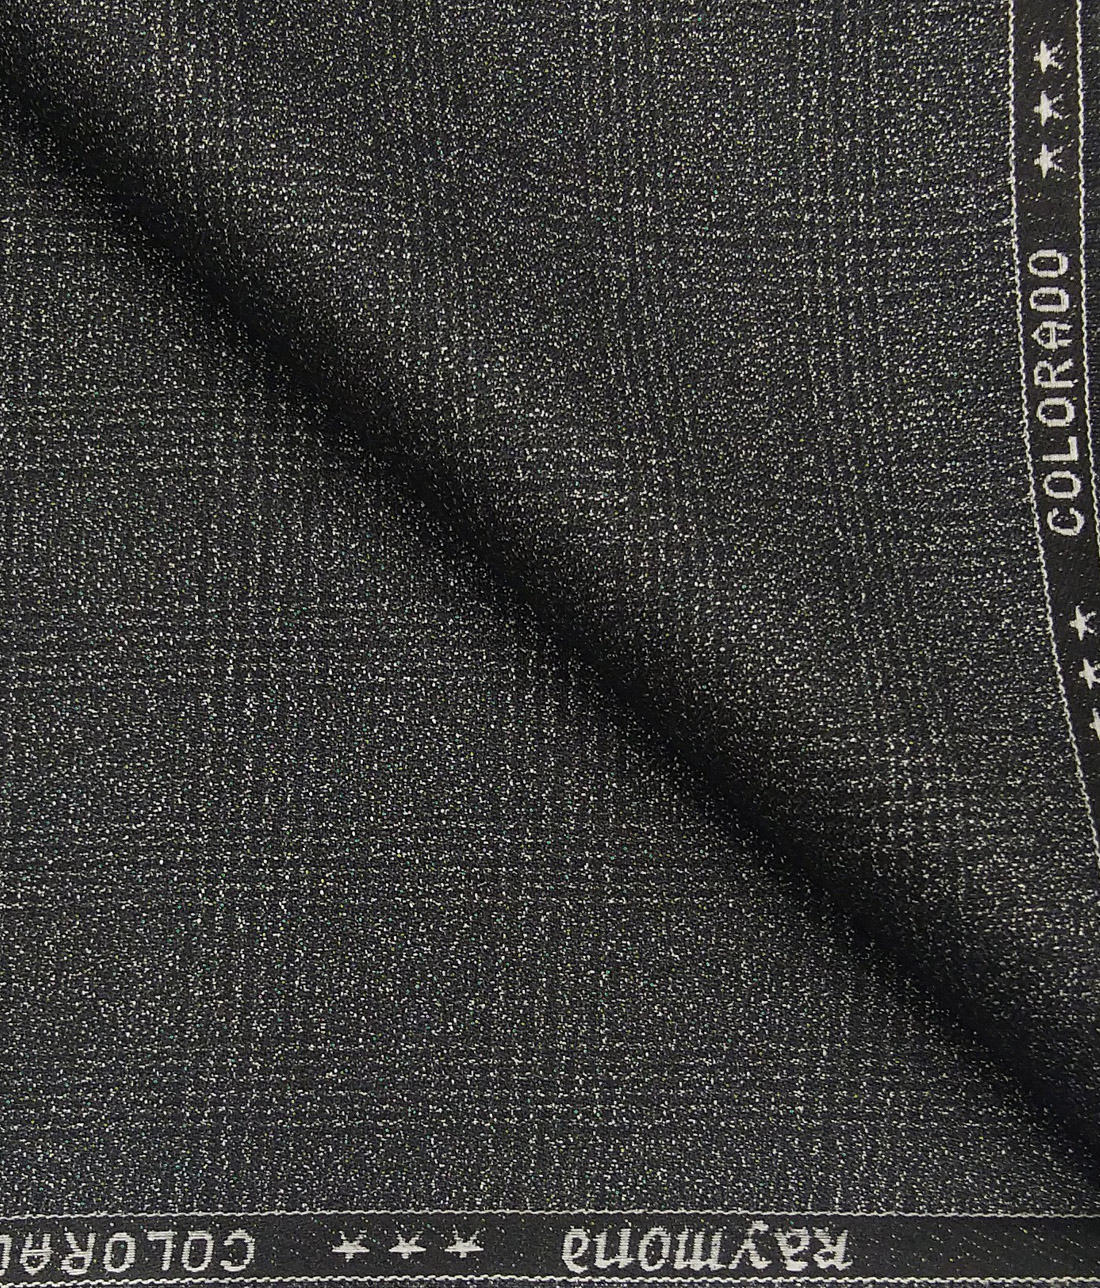 bcadd1eec Raymond Grey Polyester Viscose Broad Self Checks Unstitched Suiting Fabric  - 3.75 Meter